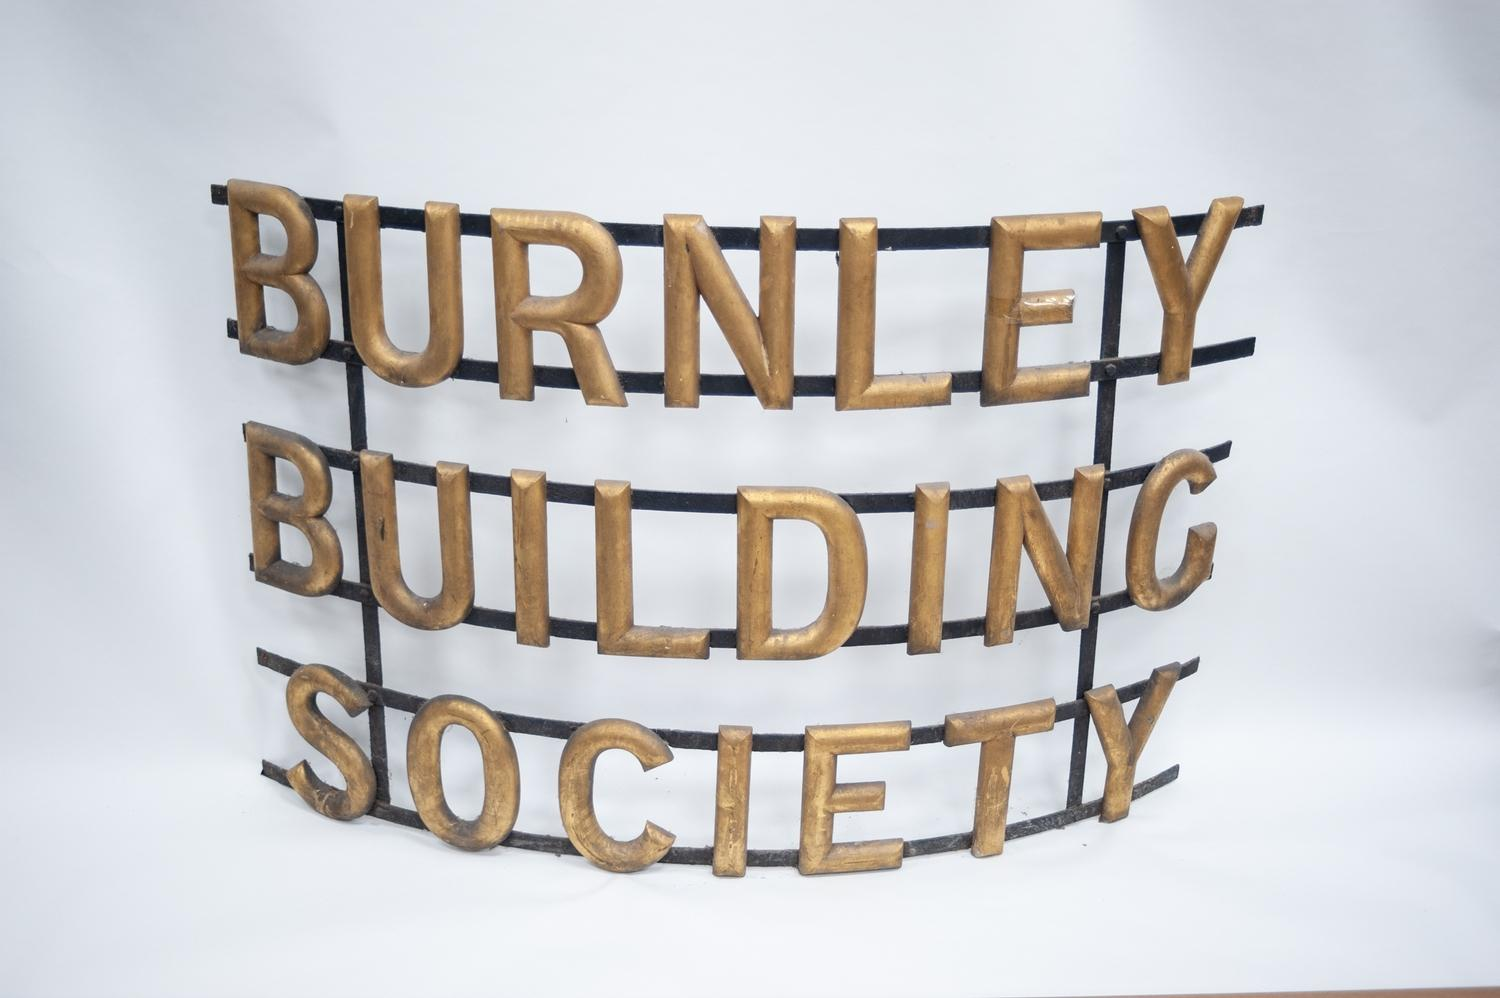 Lot 395 - CURVED WROUGHT IRON ADVERTISING SIGN ?BURNLEY BUILDING SOCIETY?, with gilt lettering on three bands,